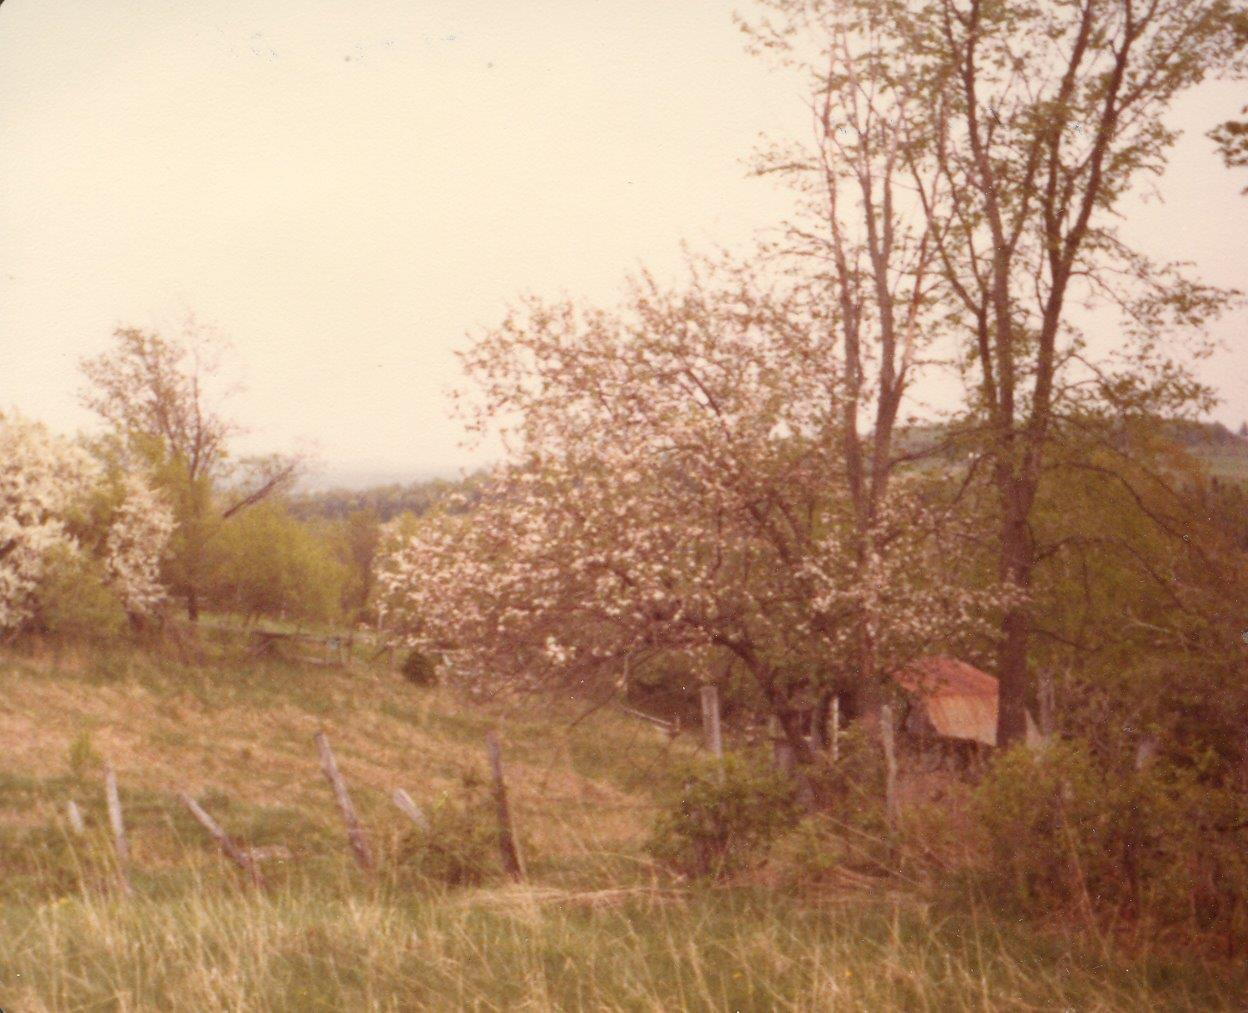 198005xx-Apple Blossoms And Barn-Randboro